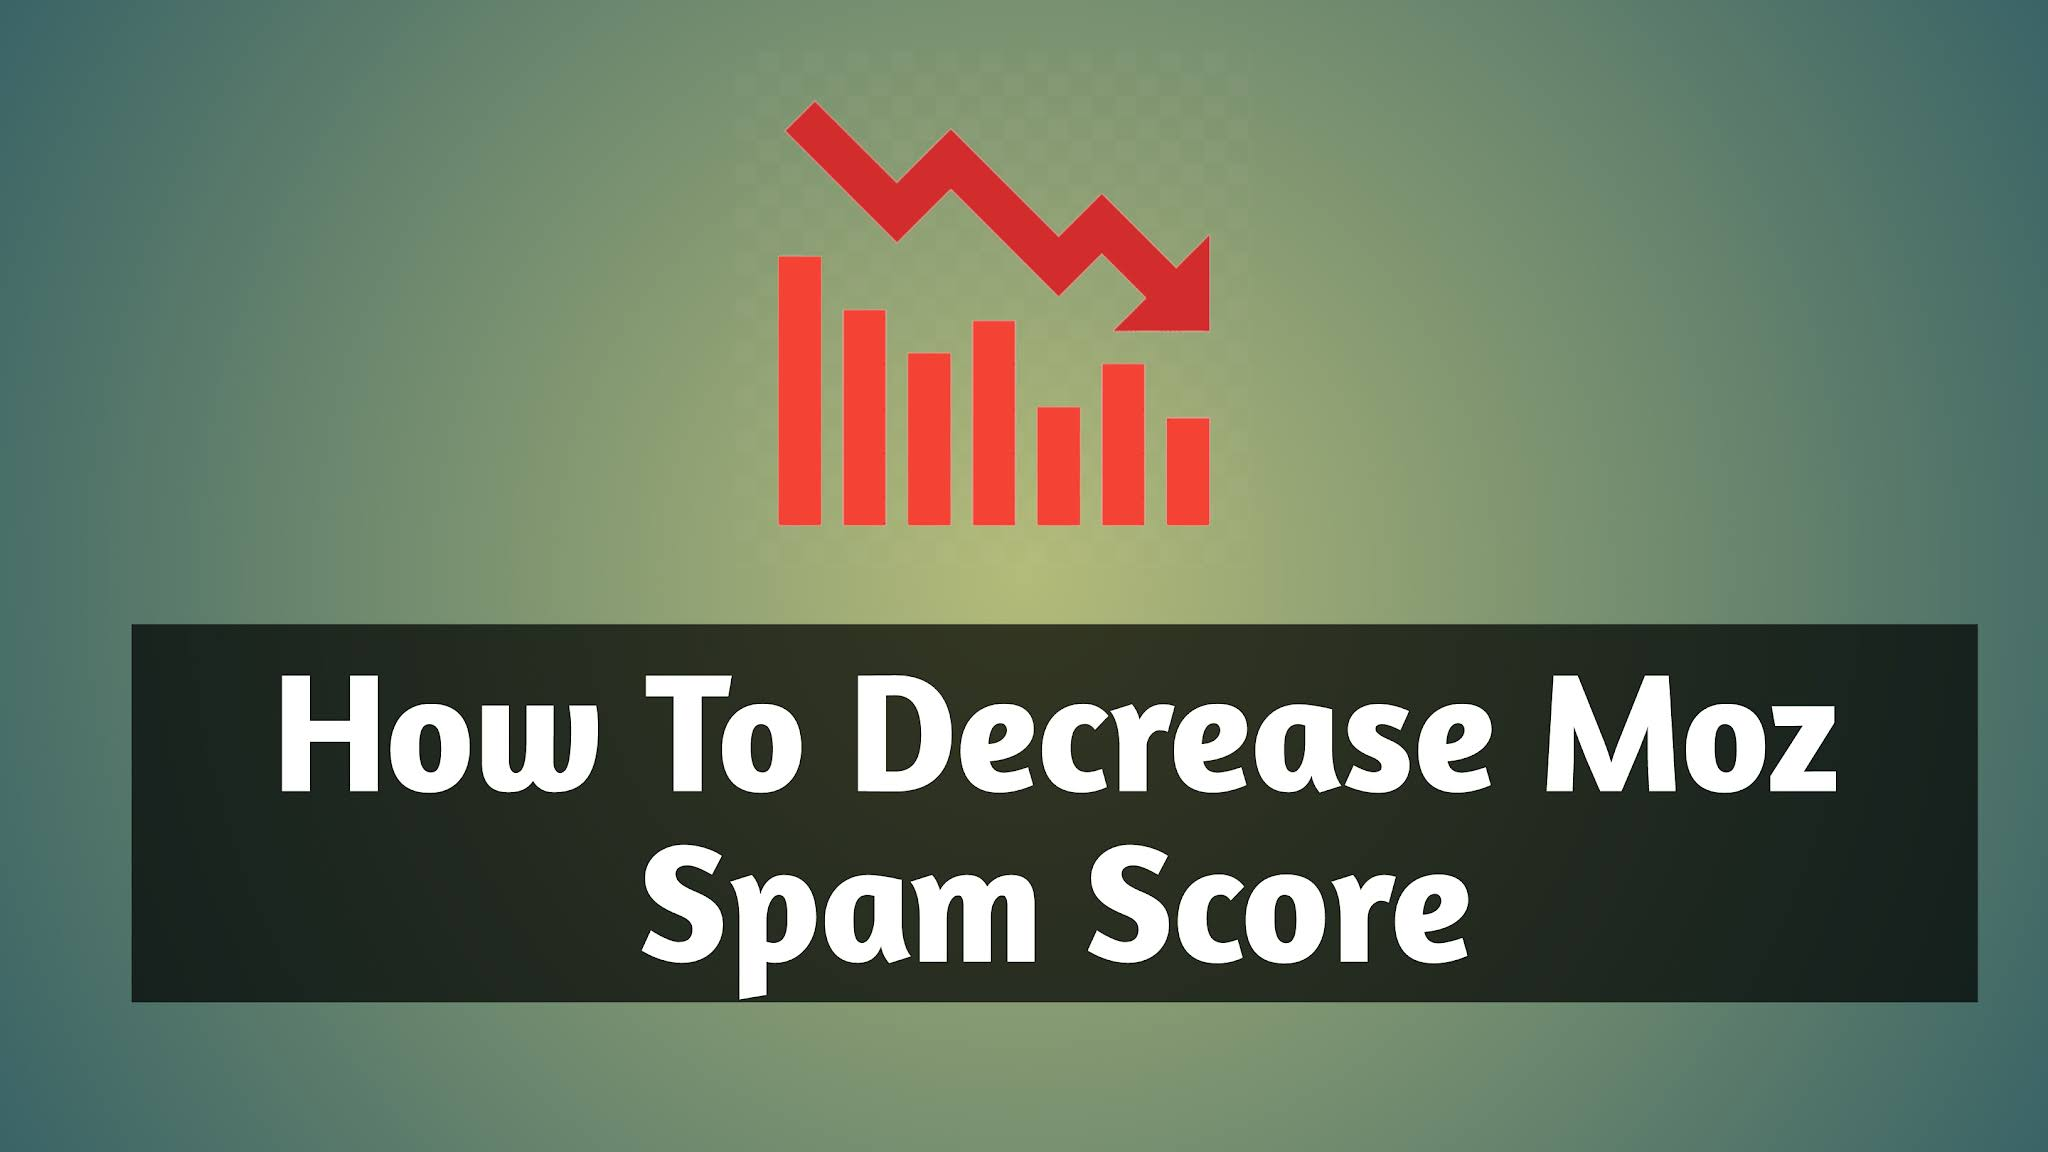 How To Decrease Moz Spam Score